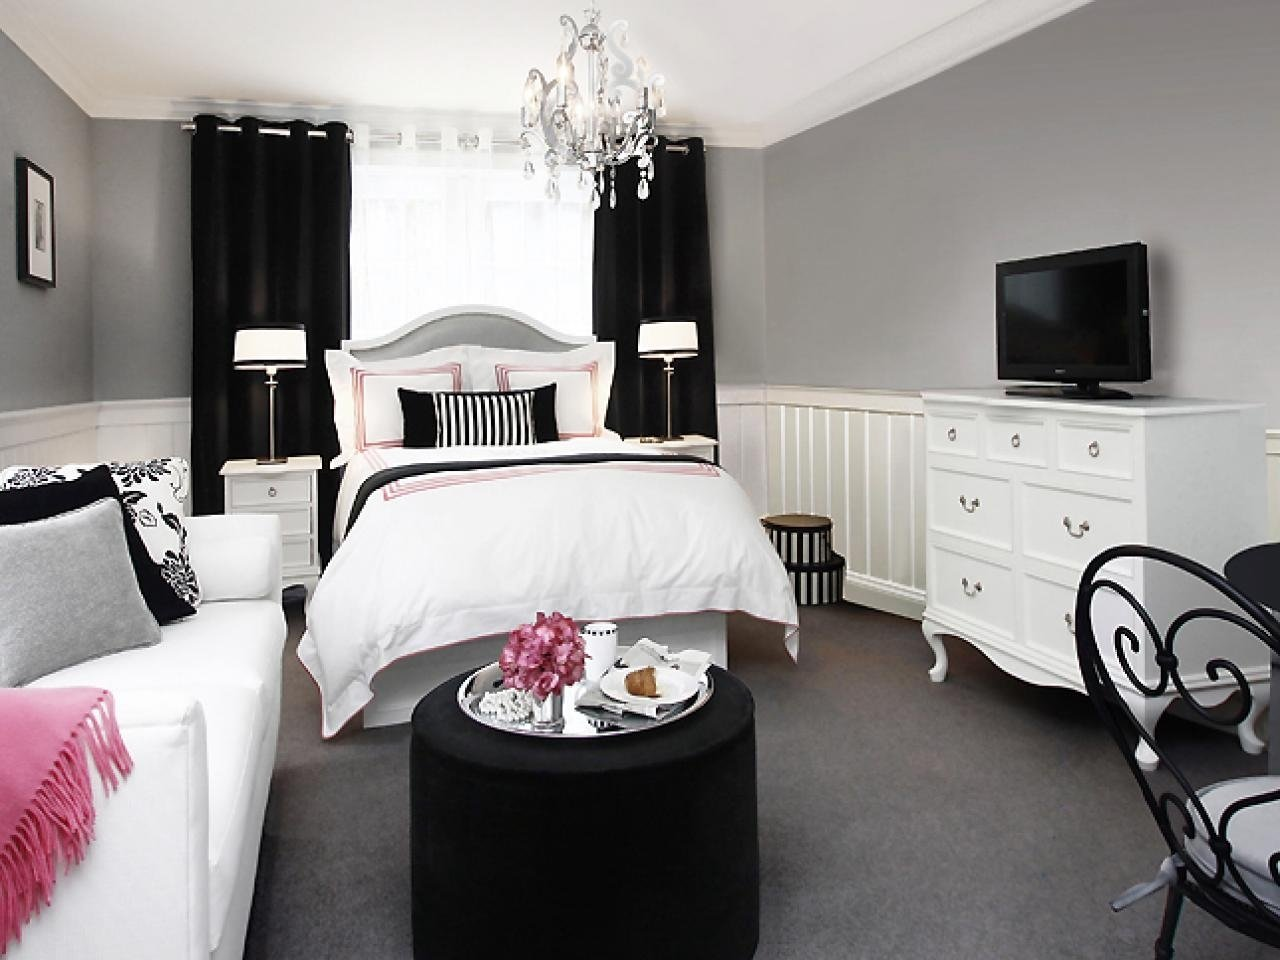 10 Nice Pink Black And White Bedroom Ideas relaxing white bedroom furniture for adults womenmisbehavin 2020